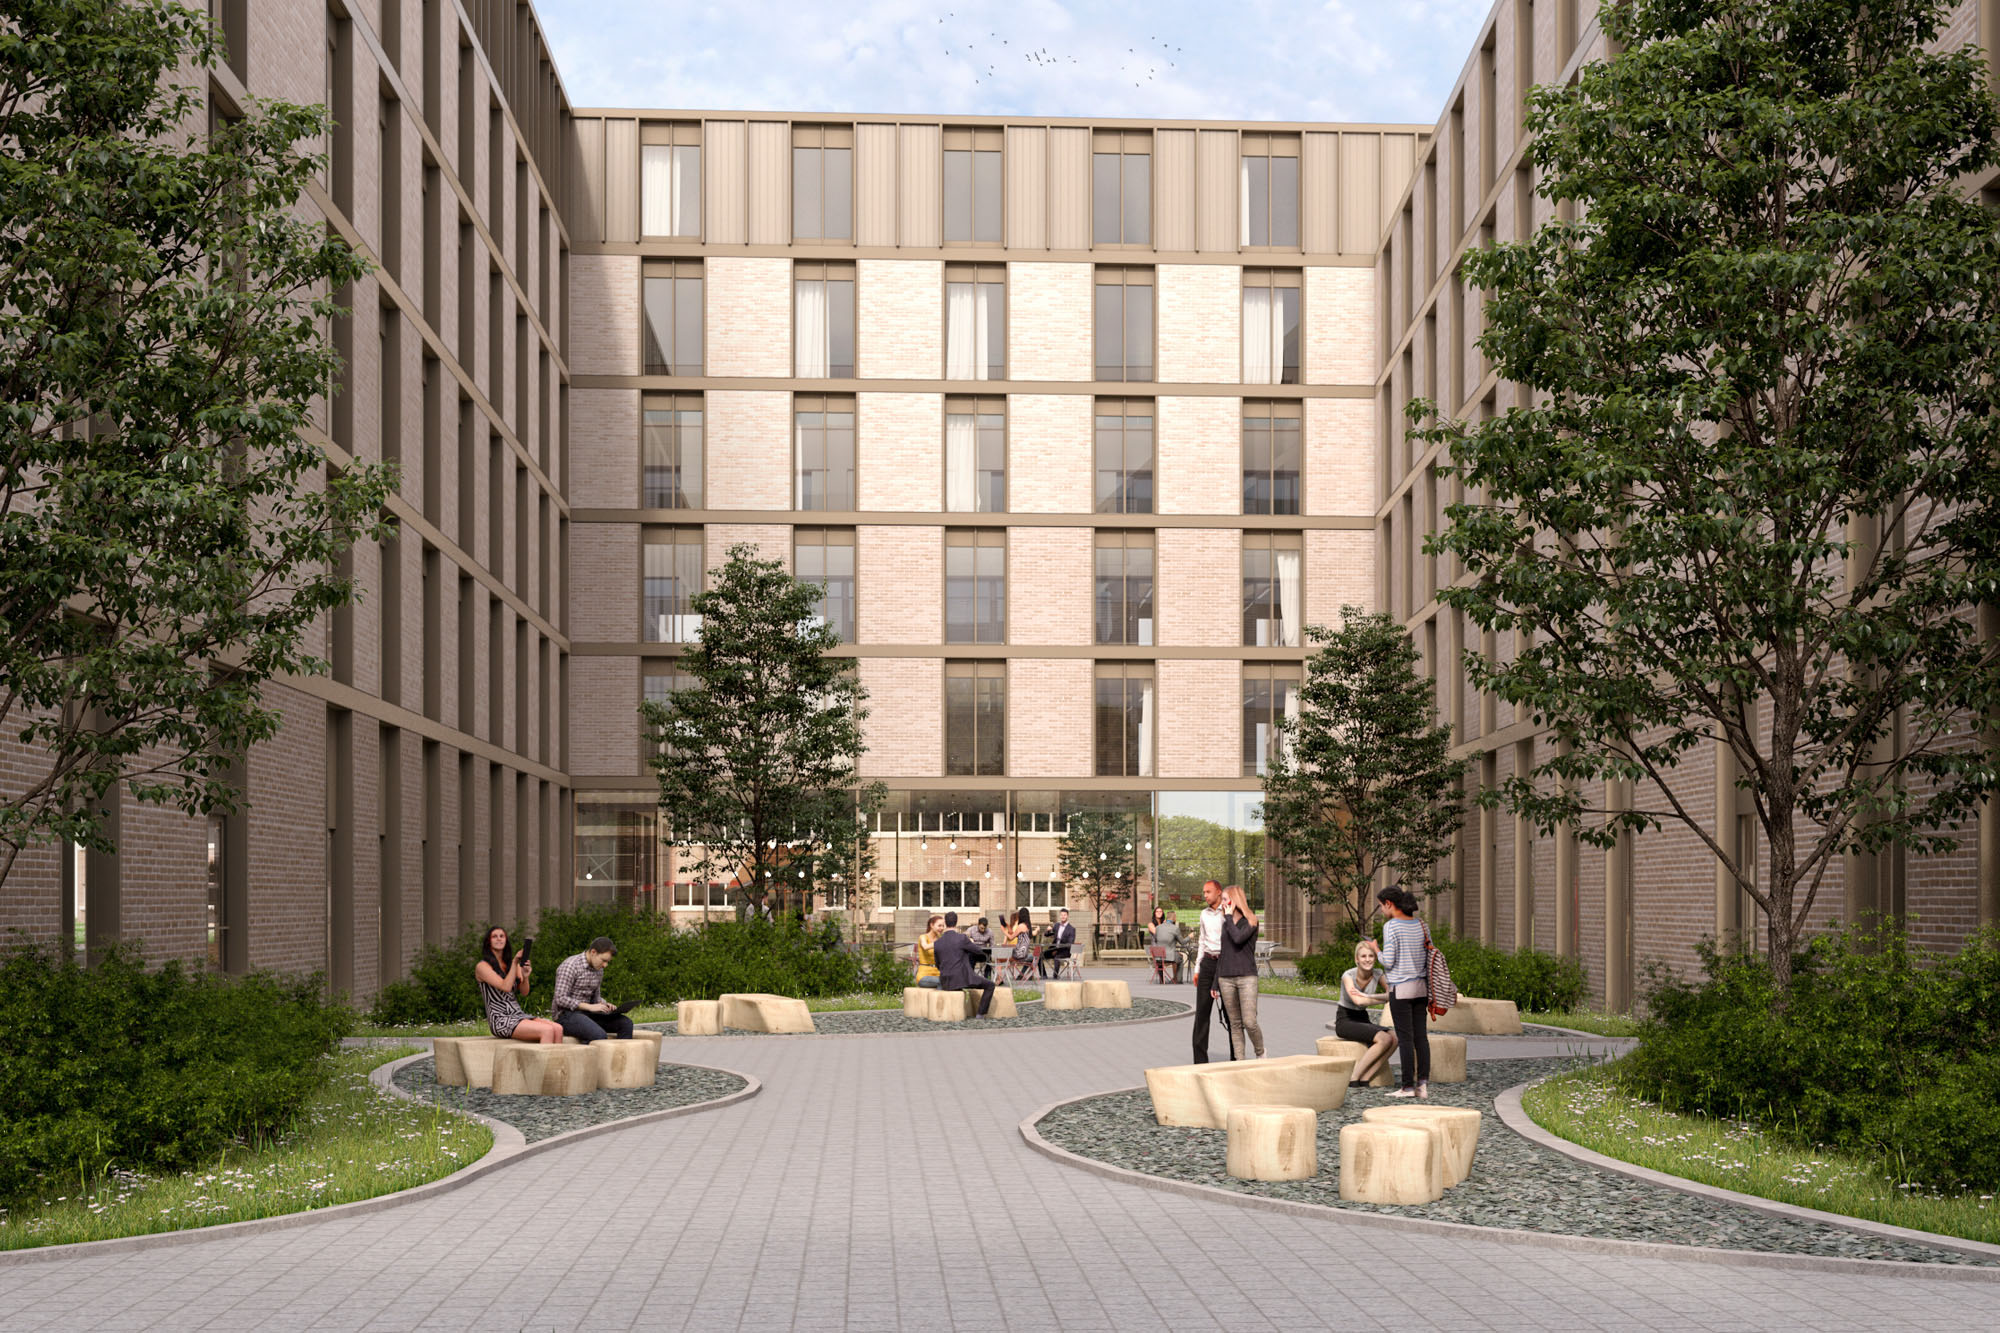 McLaren Construction - The Oaks student accommodation